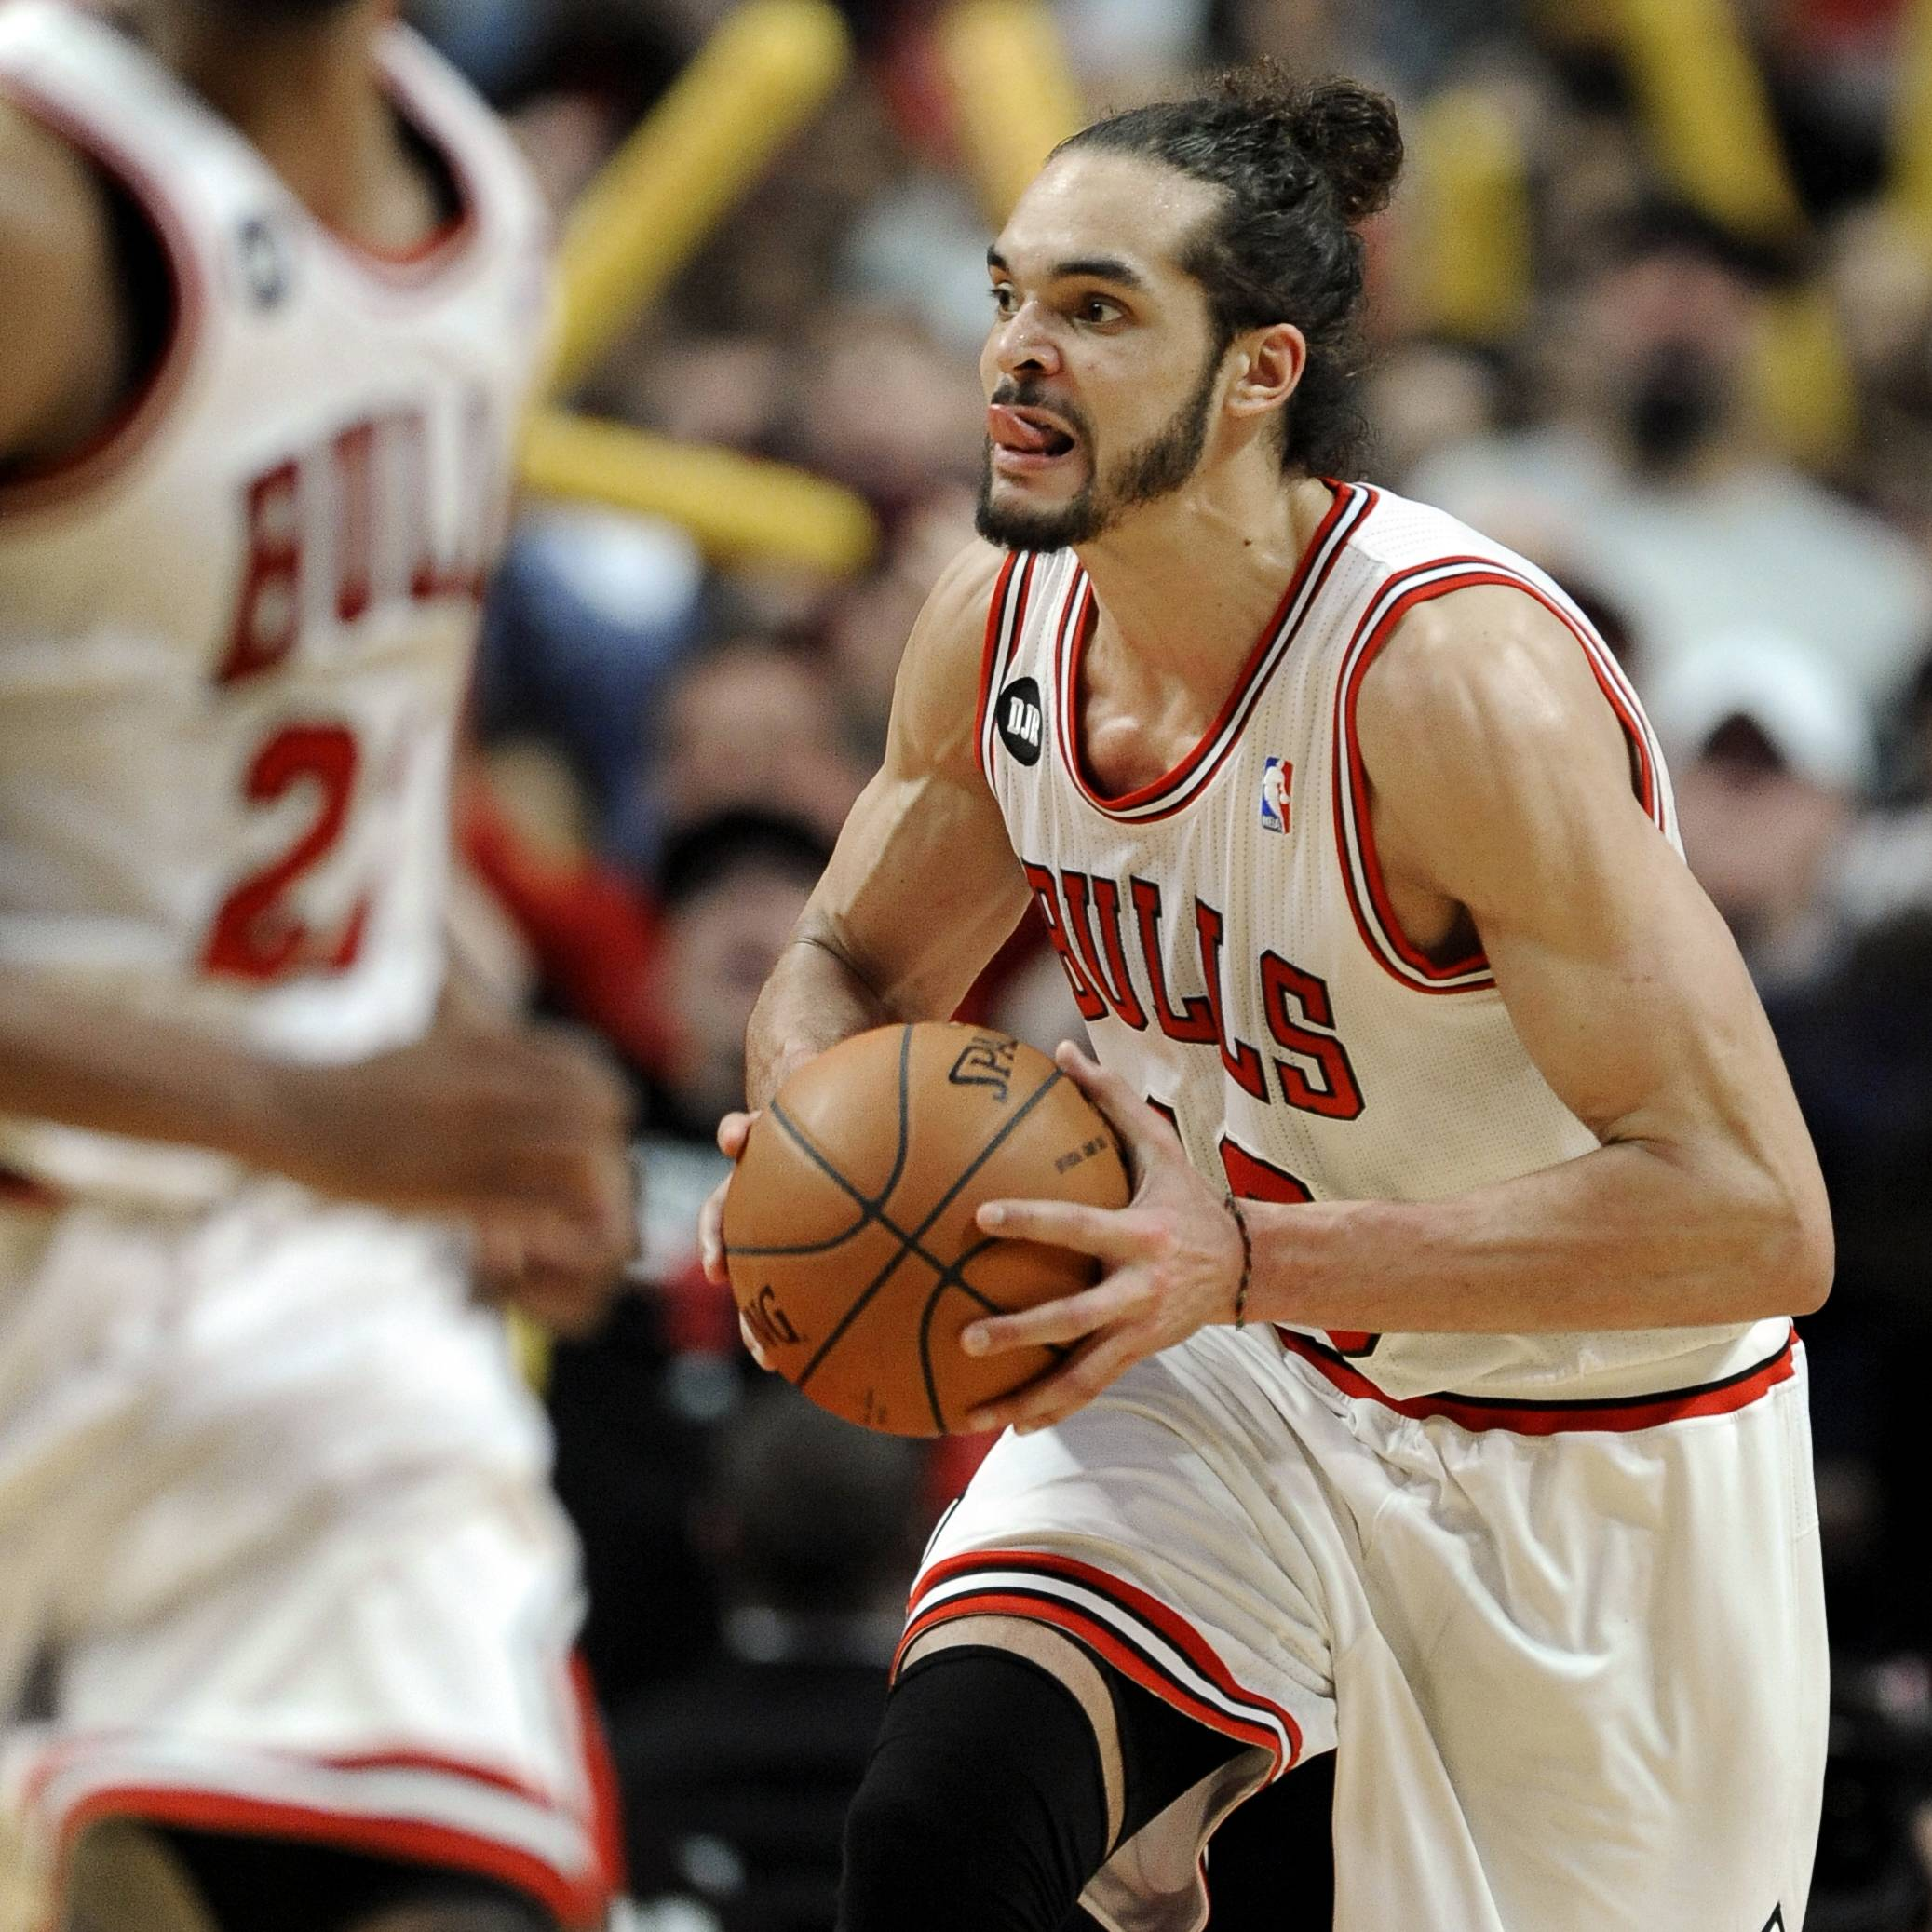 Bulls forward Joakim Noah, right, looks to pass after grabbing a rebound during overtime Sunday against the Miami Heat in Chicago. The Bulls won 95-88 in overtime.